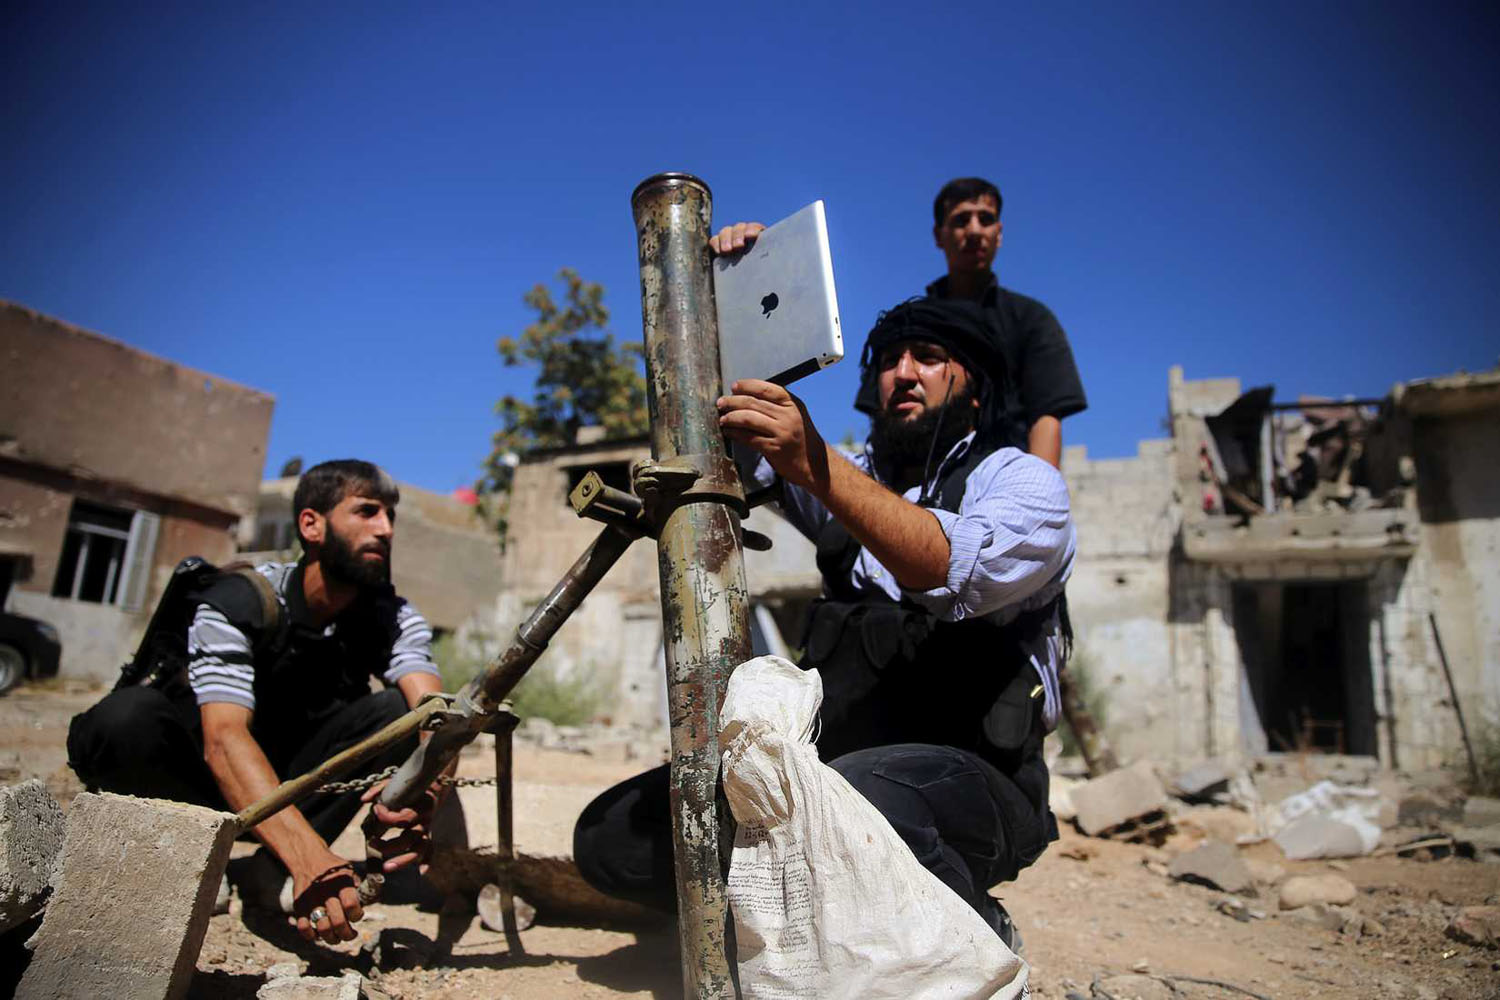 A rebel fighter, who belongs to the Free Syrian Army, uses an iPad during preparations to fire a homemade mortar at a battlefront in Damascus on Sept. 15, 2013